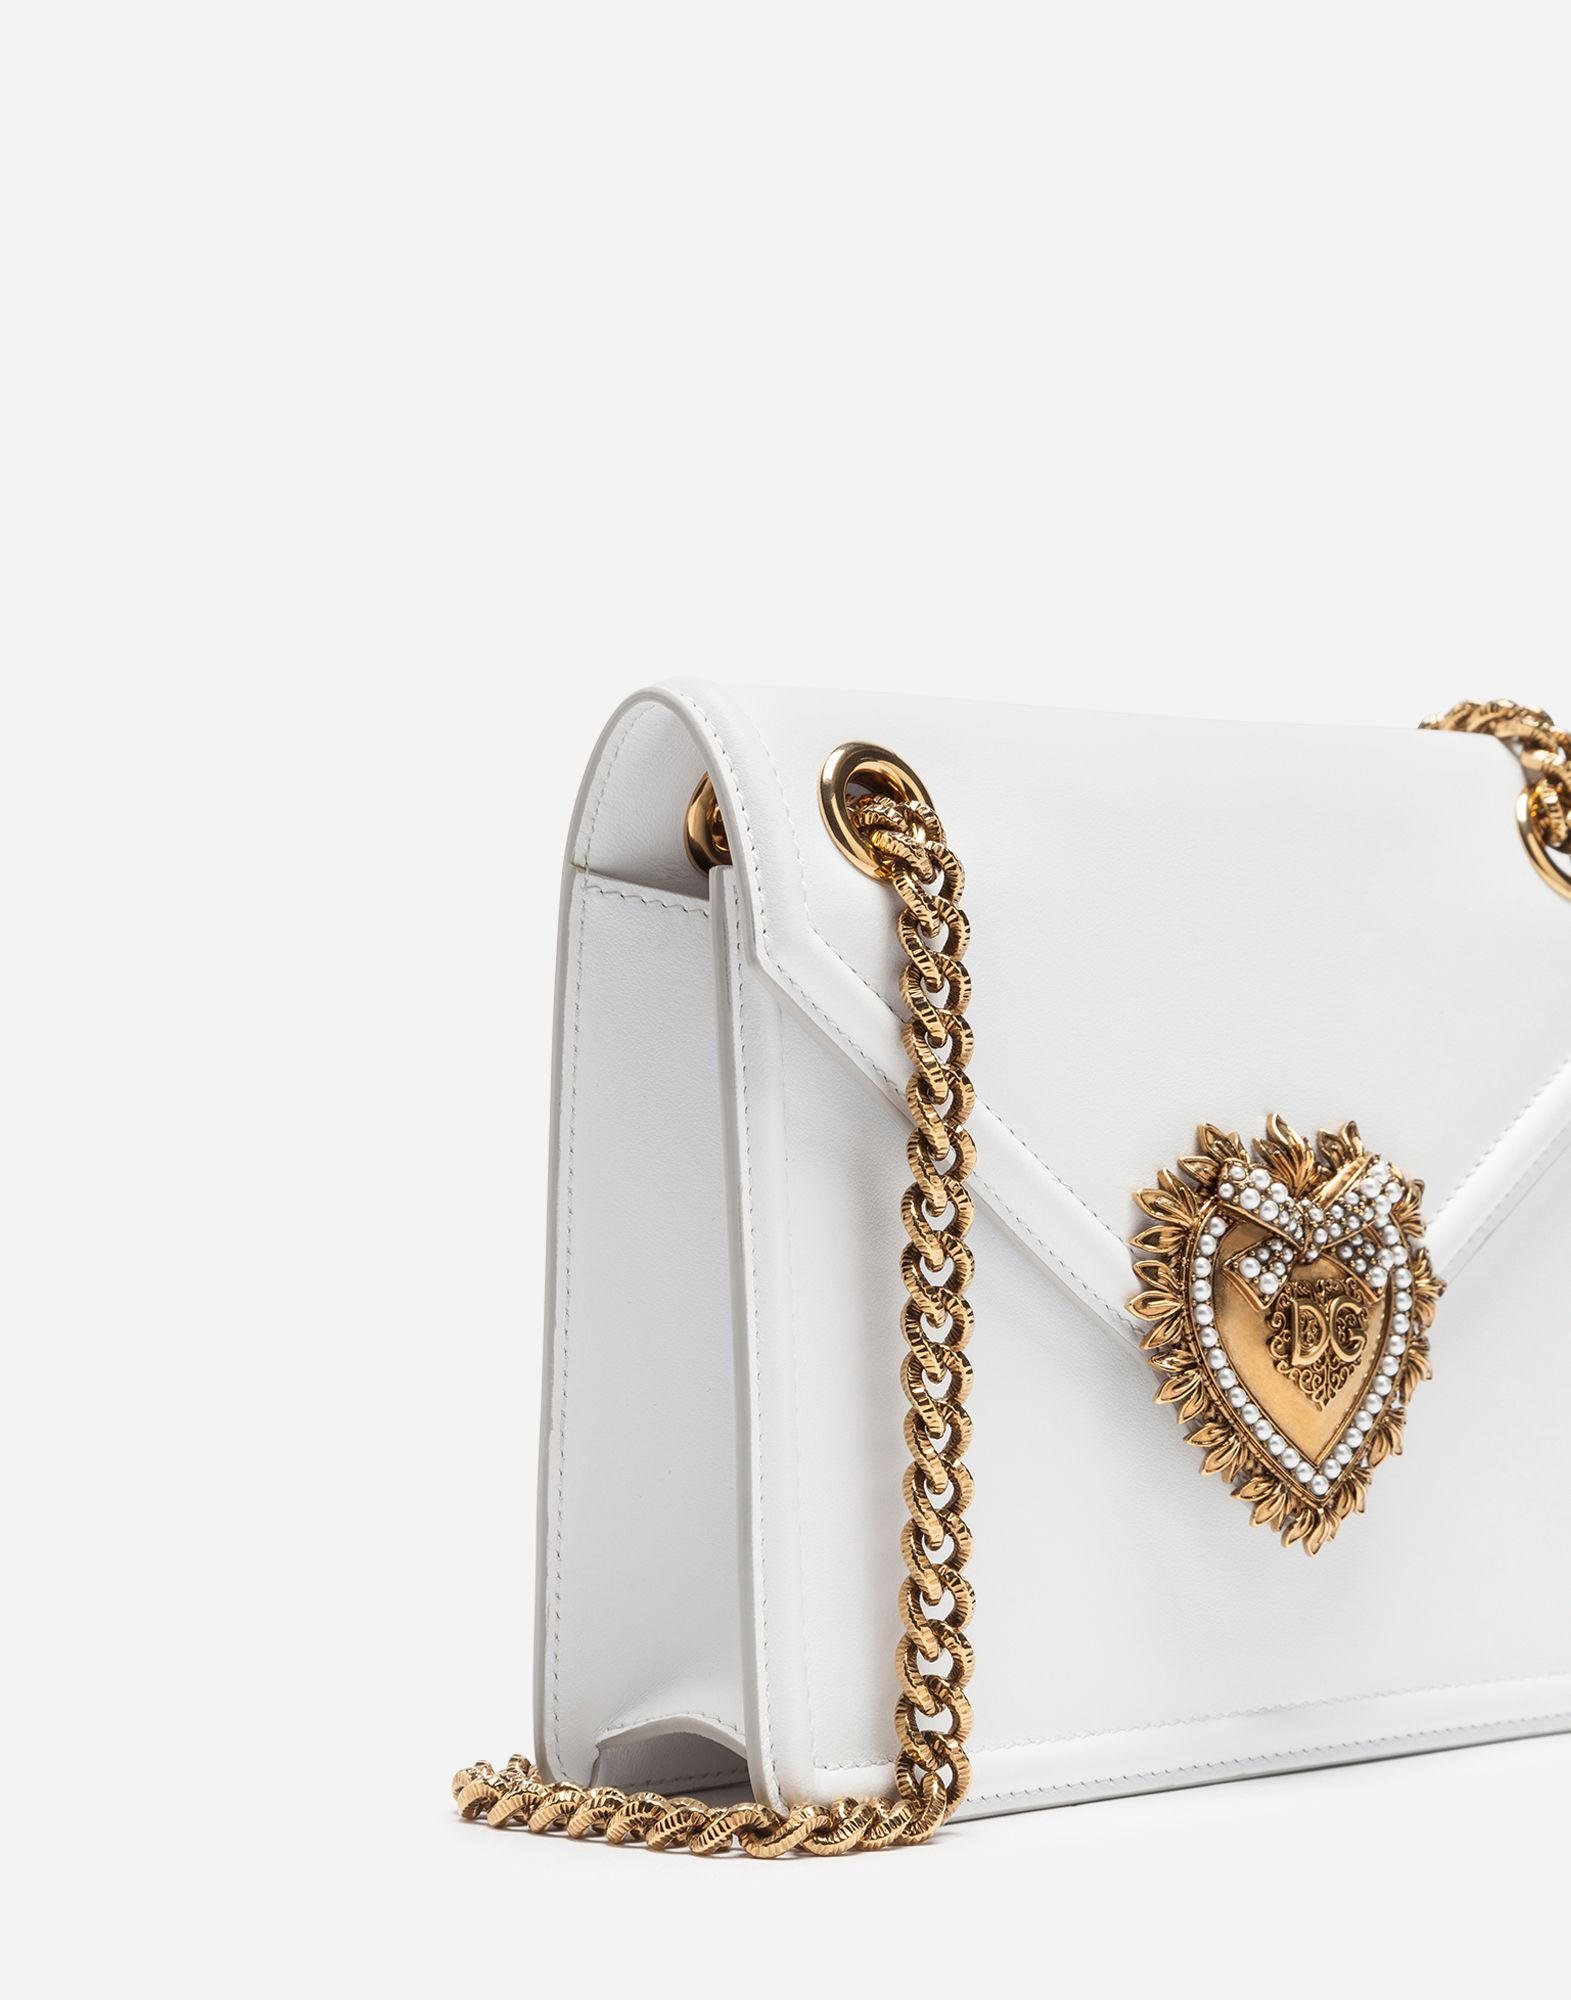 a3d240aea1 Lyst - Dolce   Gabbana Medium Devotion Bag In Smooth Calfskin Leather in  White